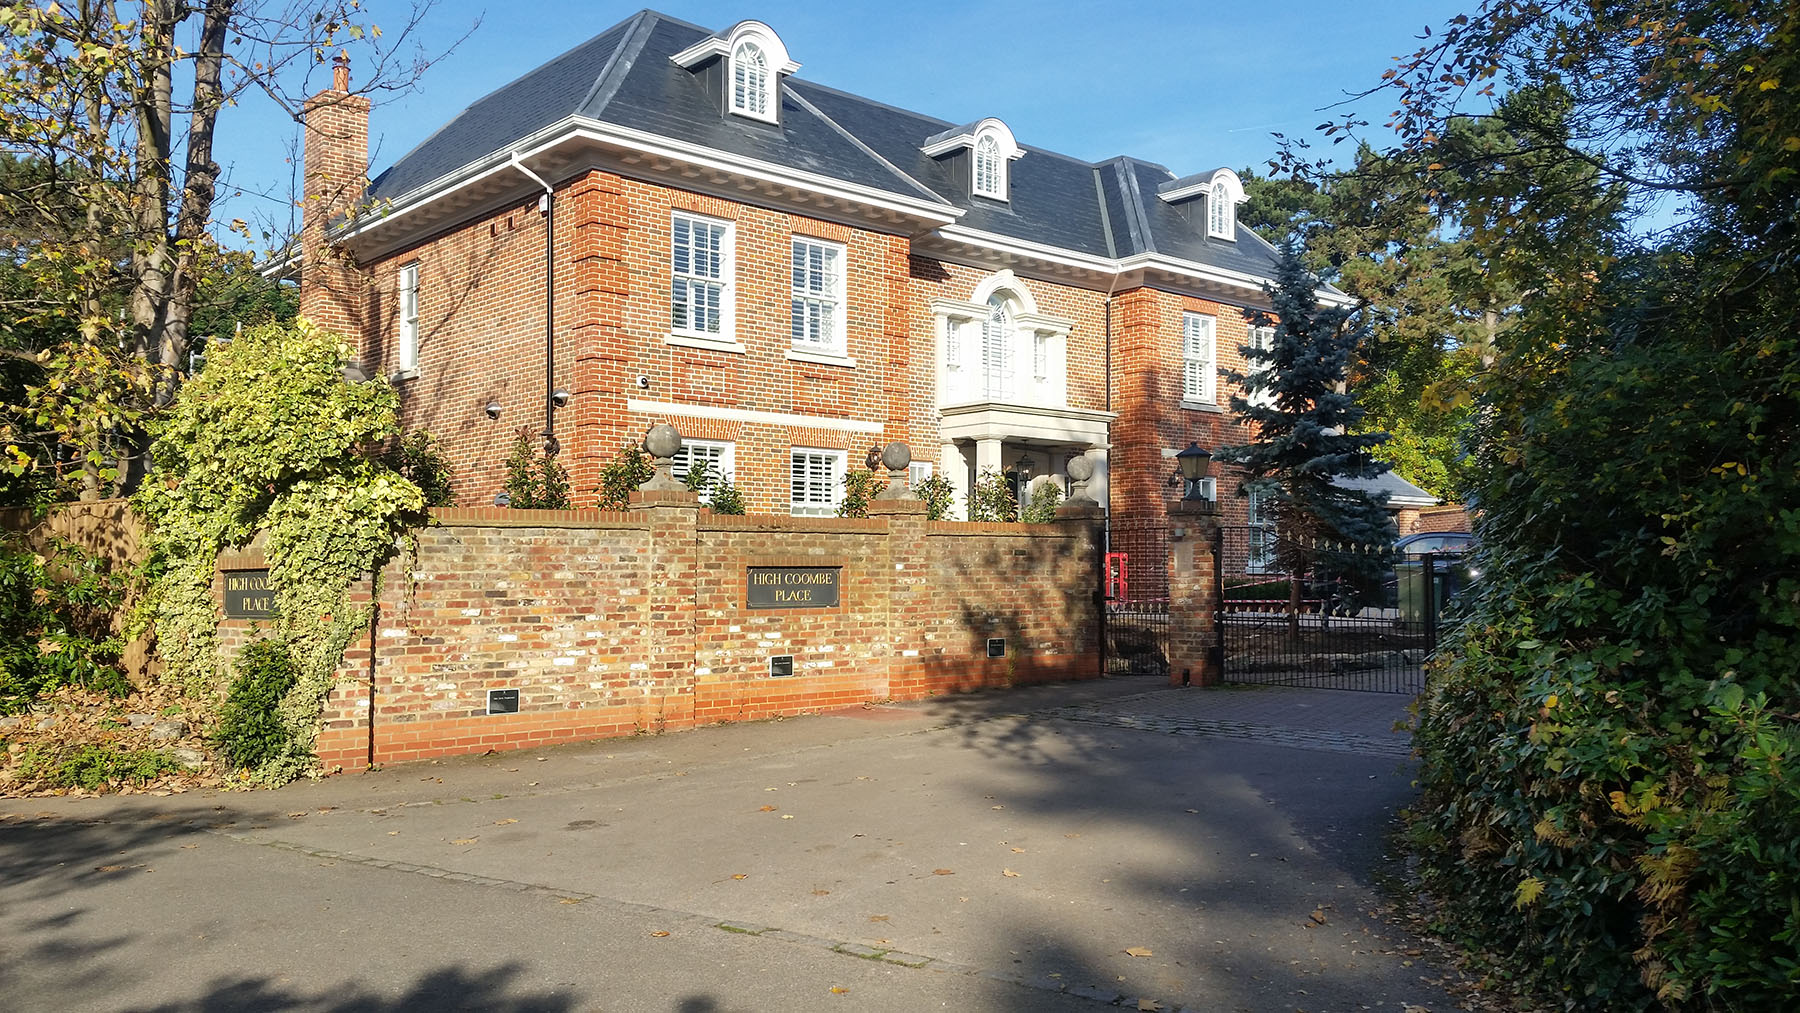 High Coombe Place, Kingston upon Thames, Private Firm